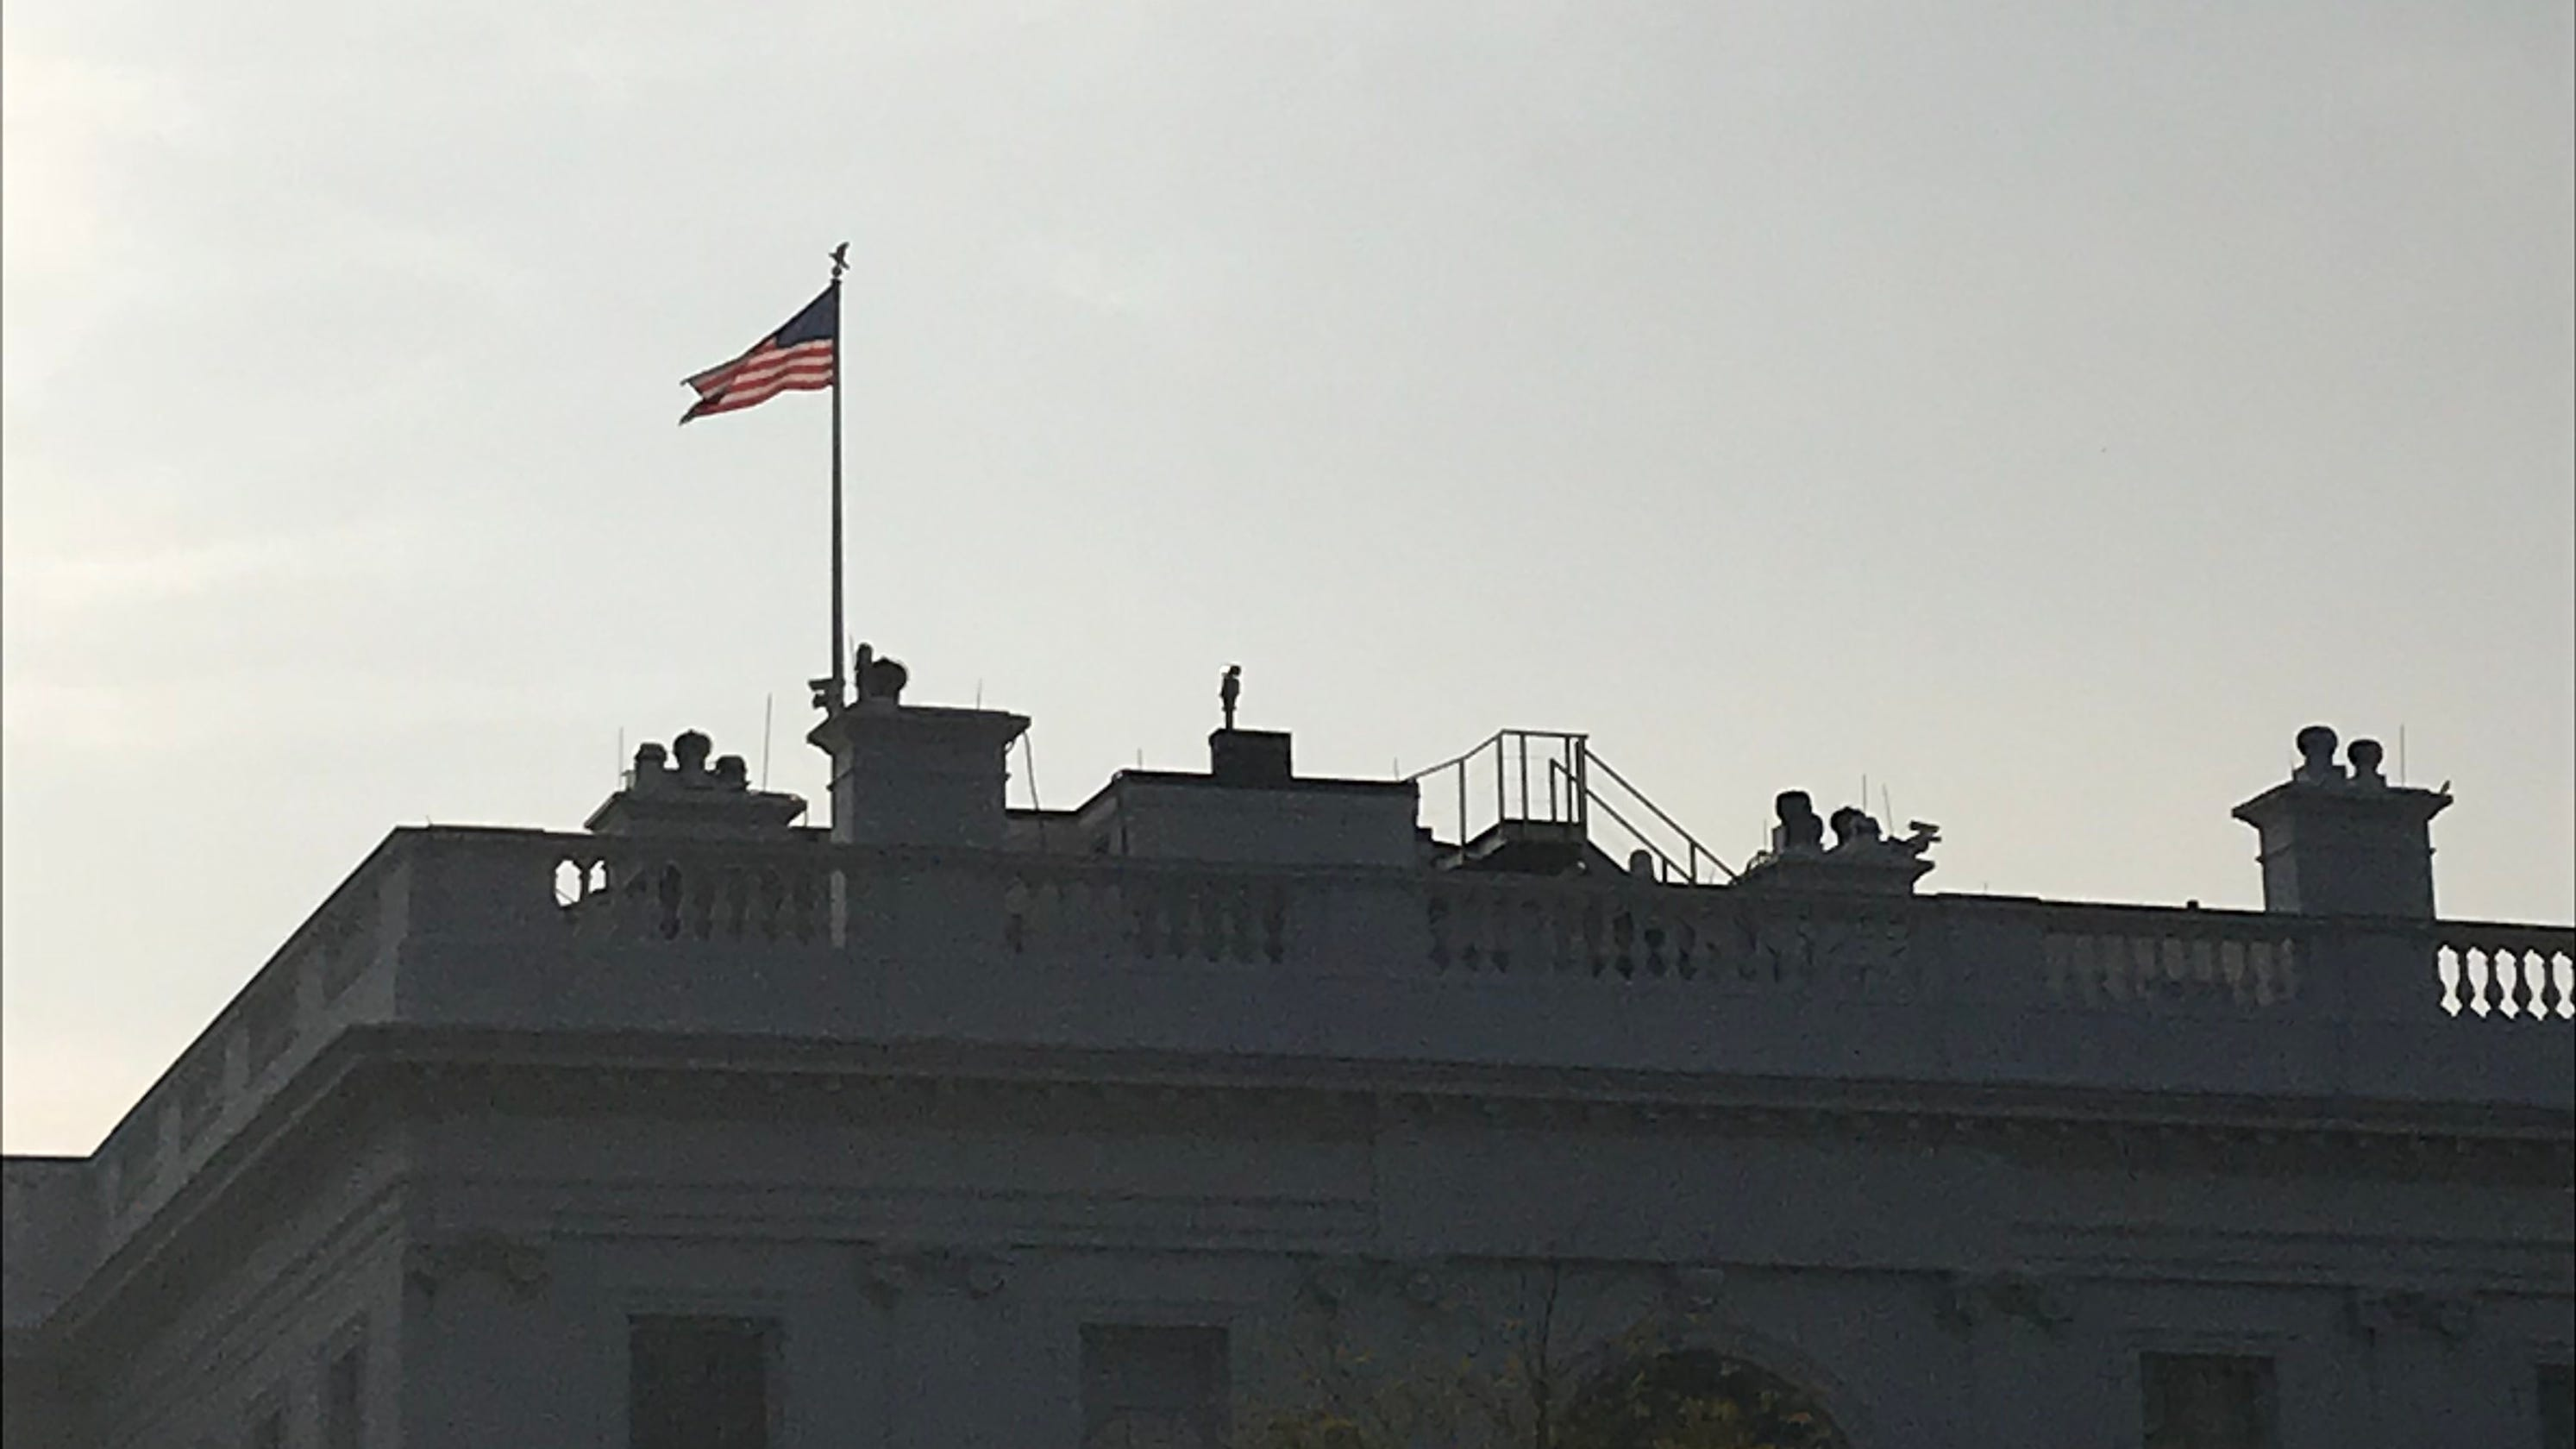 Fine John Mccain Flags Back To Half Staff At White House After Death Download Free Architecture Designs Scobabritishbridgeorg